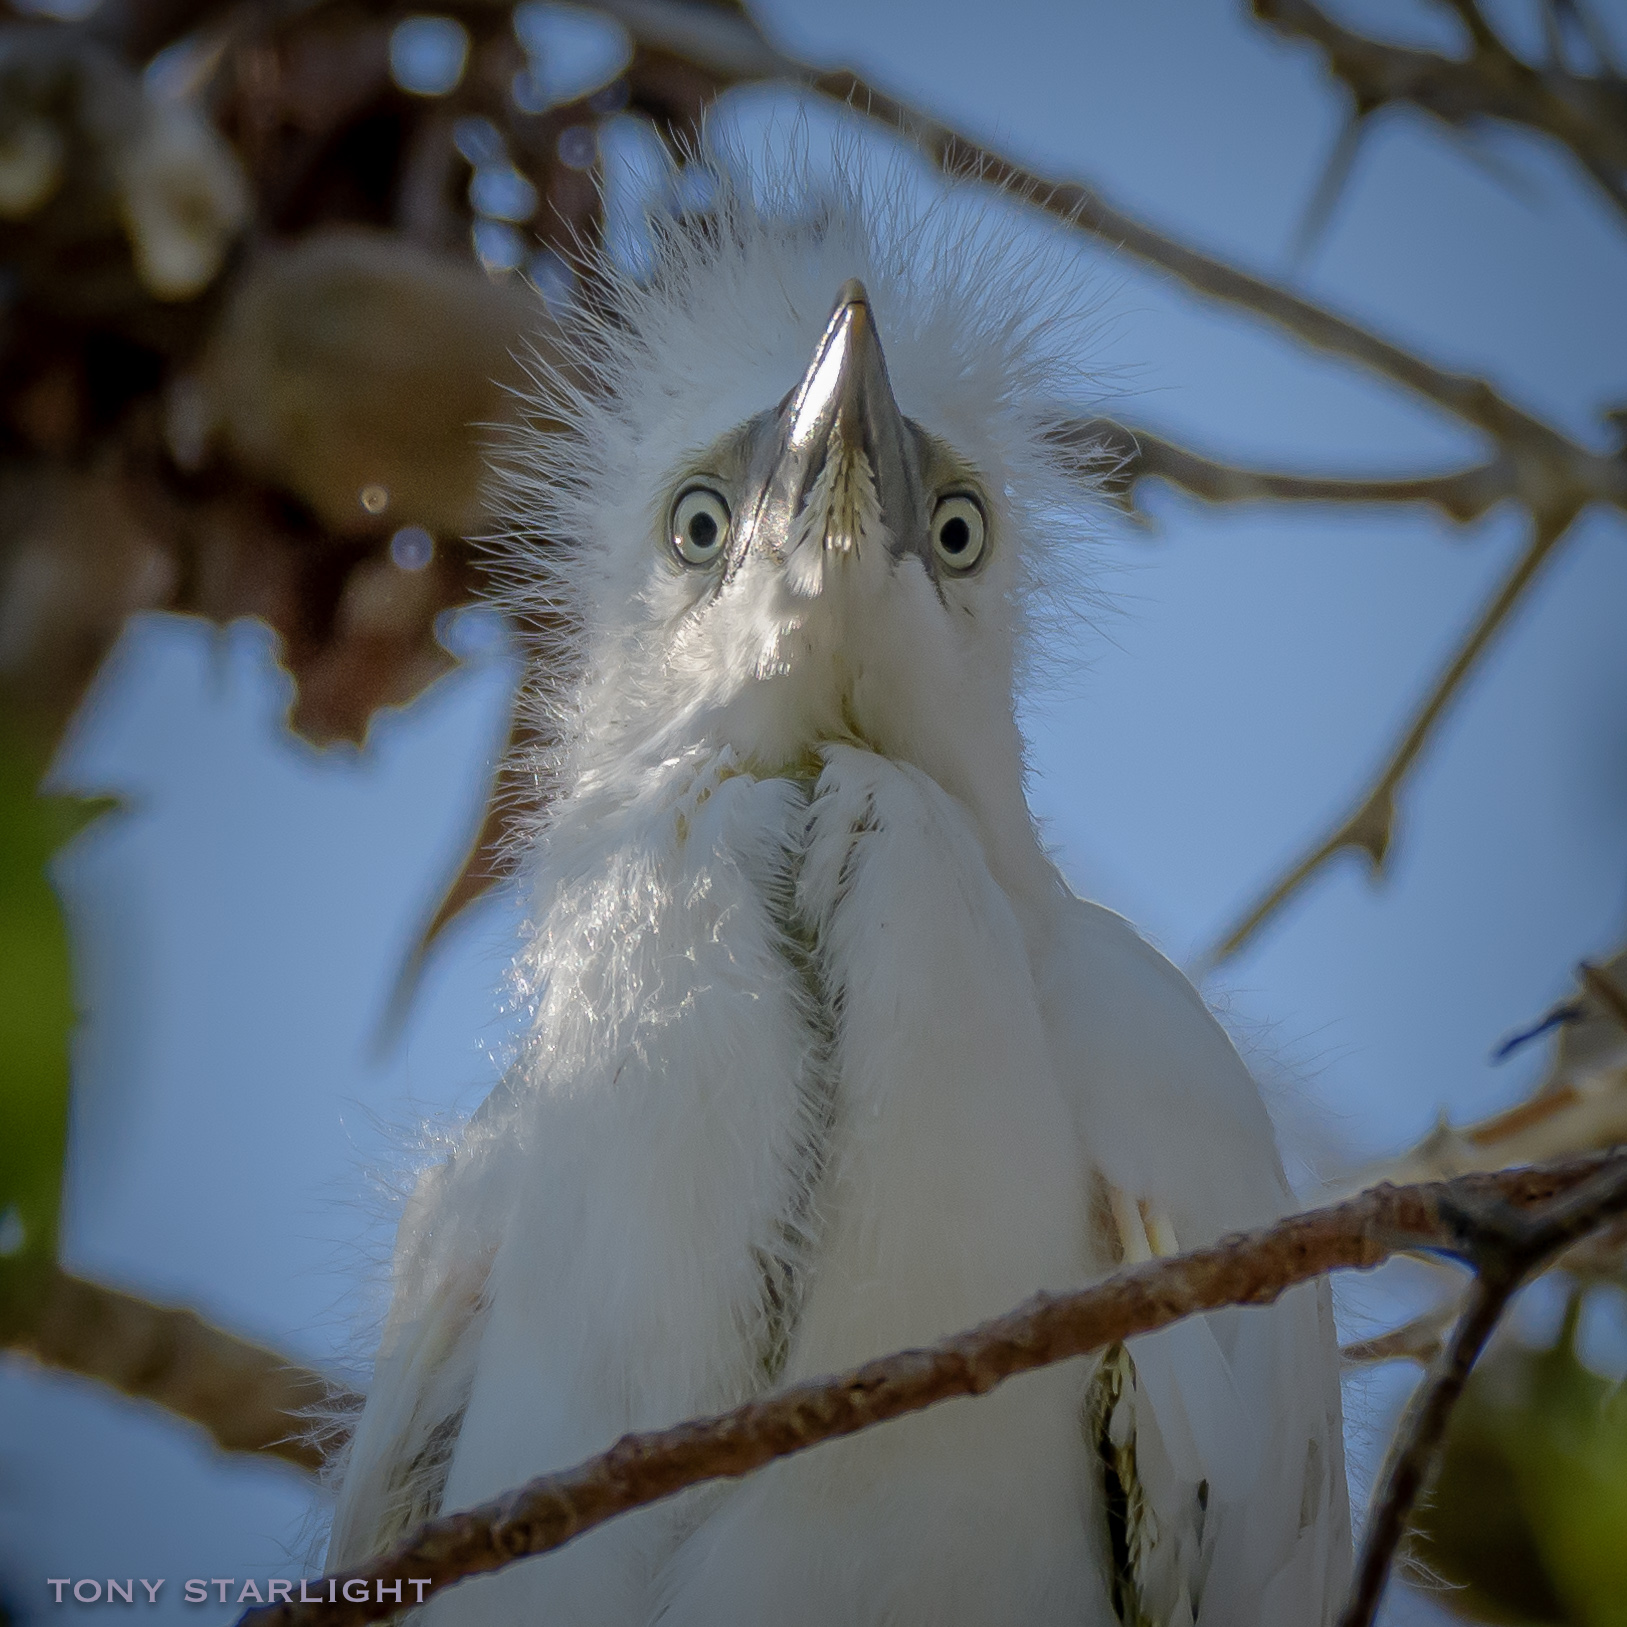 """Cattle Egret juvenile - Not able to get a better view, I walked beneath a tree teeming with baby egrets. I noticed they were busy trying to """"whitewash"""" the beach below their heronry, but I bravely ventured in and managed a picture of this little guy gazing down on me."""